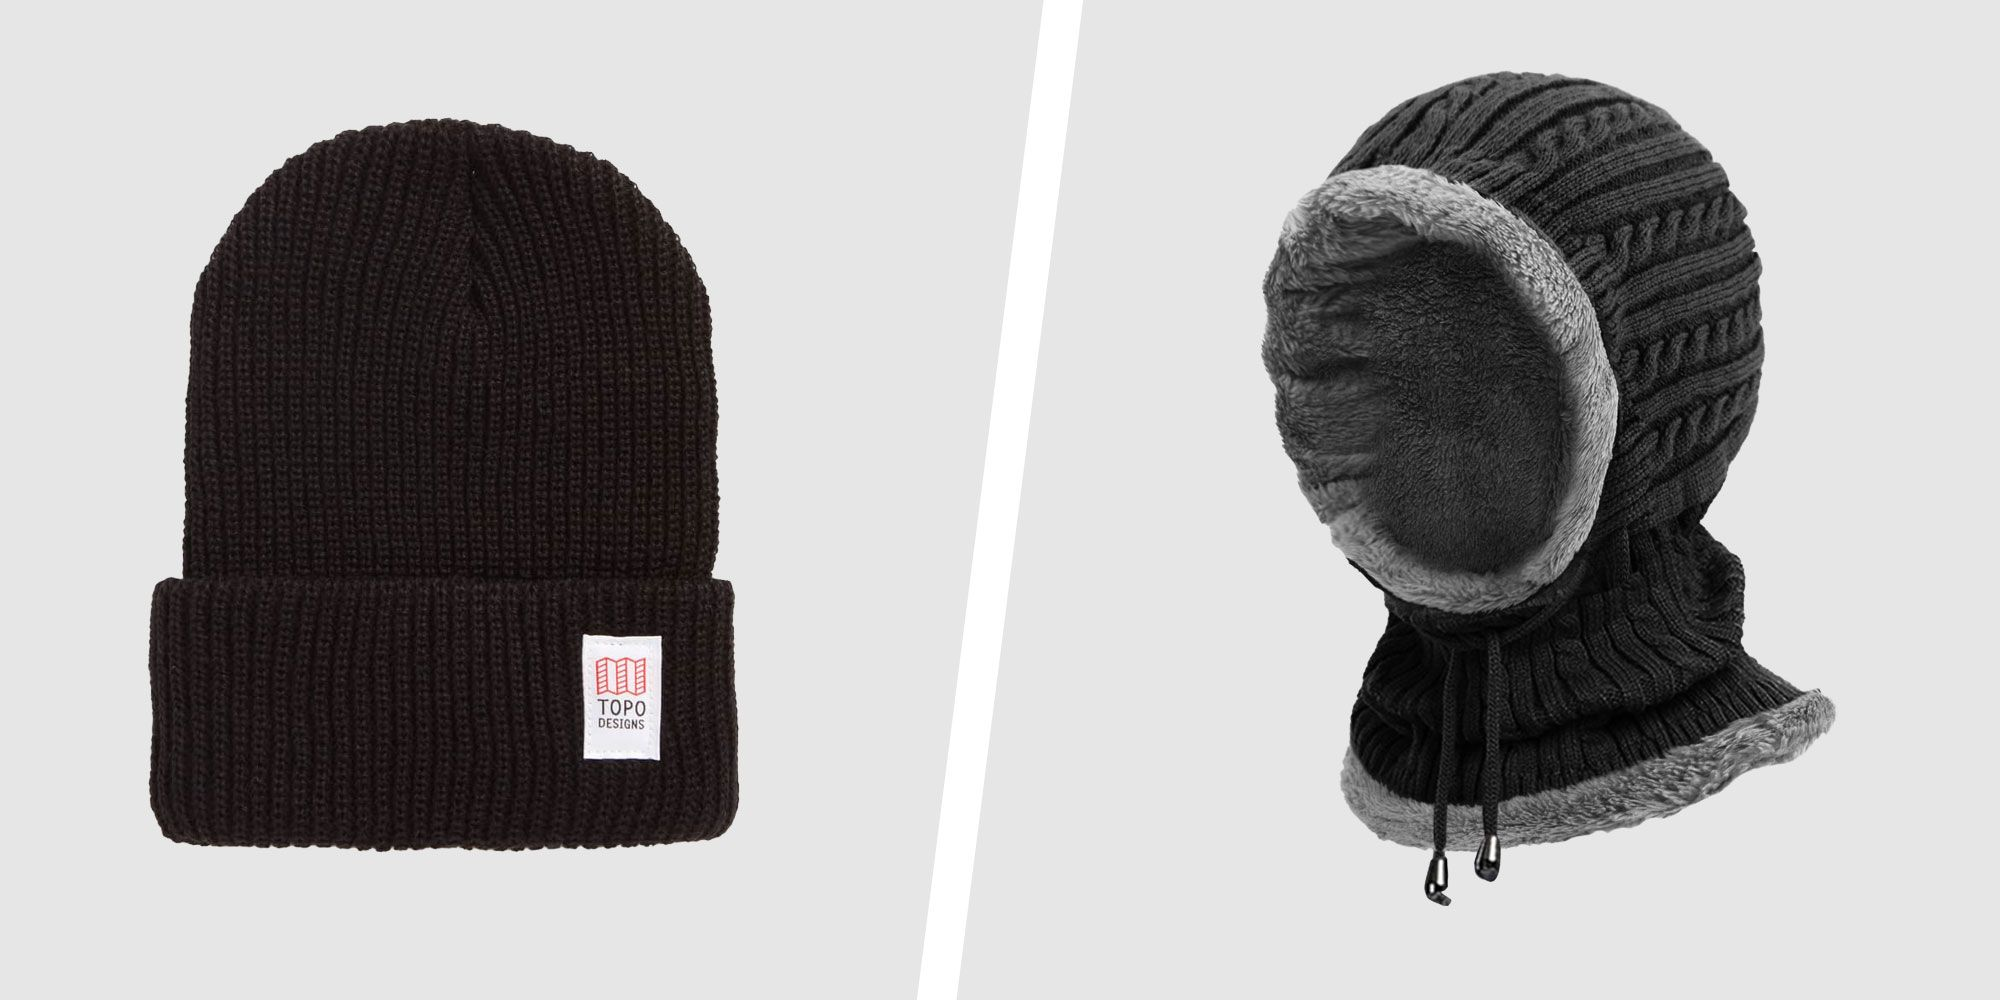 7 Best Winter Hats 2018 - Beanies d800949cedd